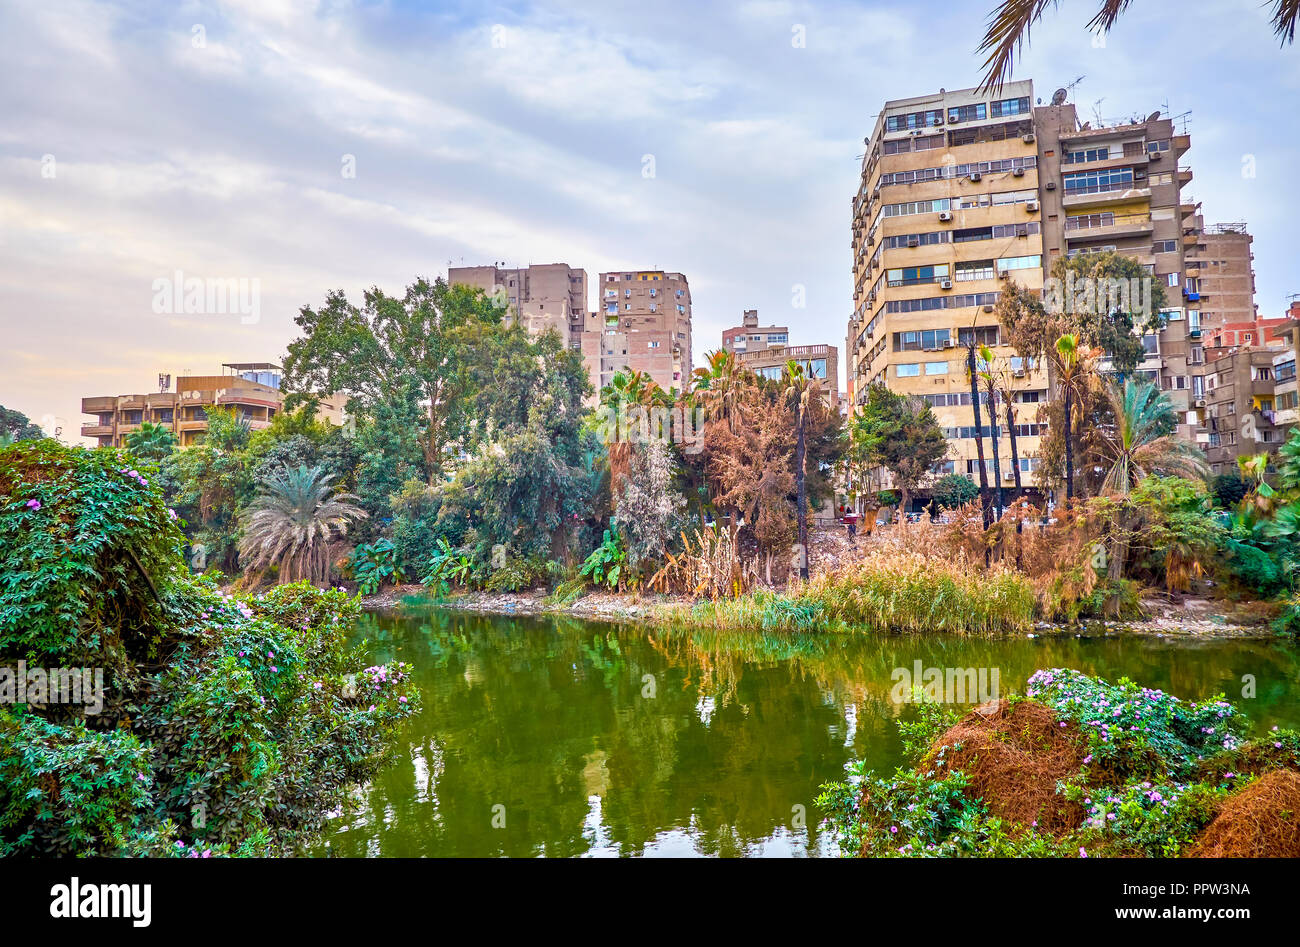 The residential district on Rawdah (Roda) island with decrepit buildings in Cairo, Egypt - Stock Image